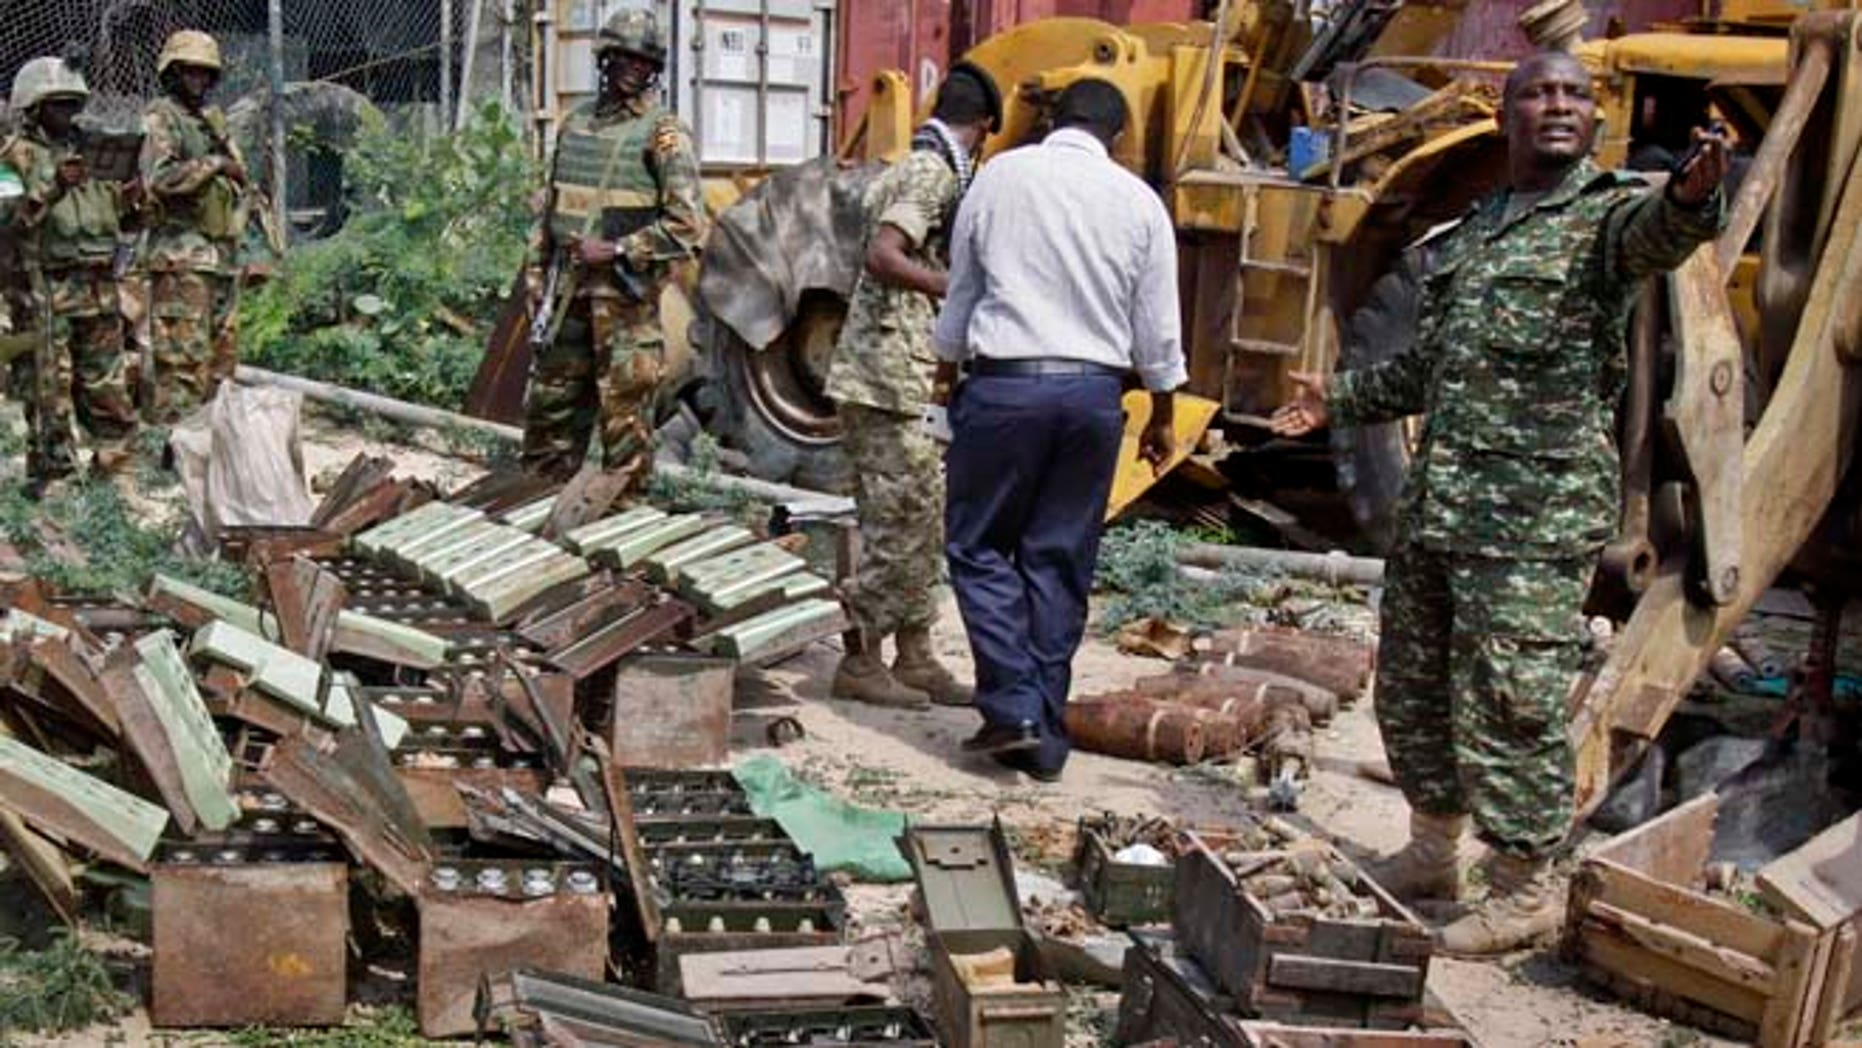 July 27, 2014: In this photo, African Union (AU) peacekeepers stand near a cache of weapons recovered from a garage in Mogadishu, Somalia. (AP)